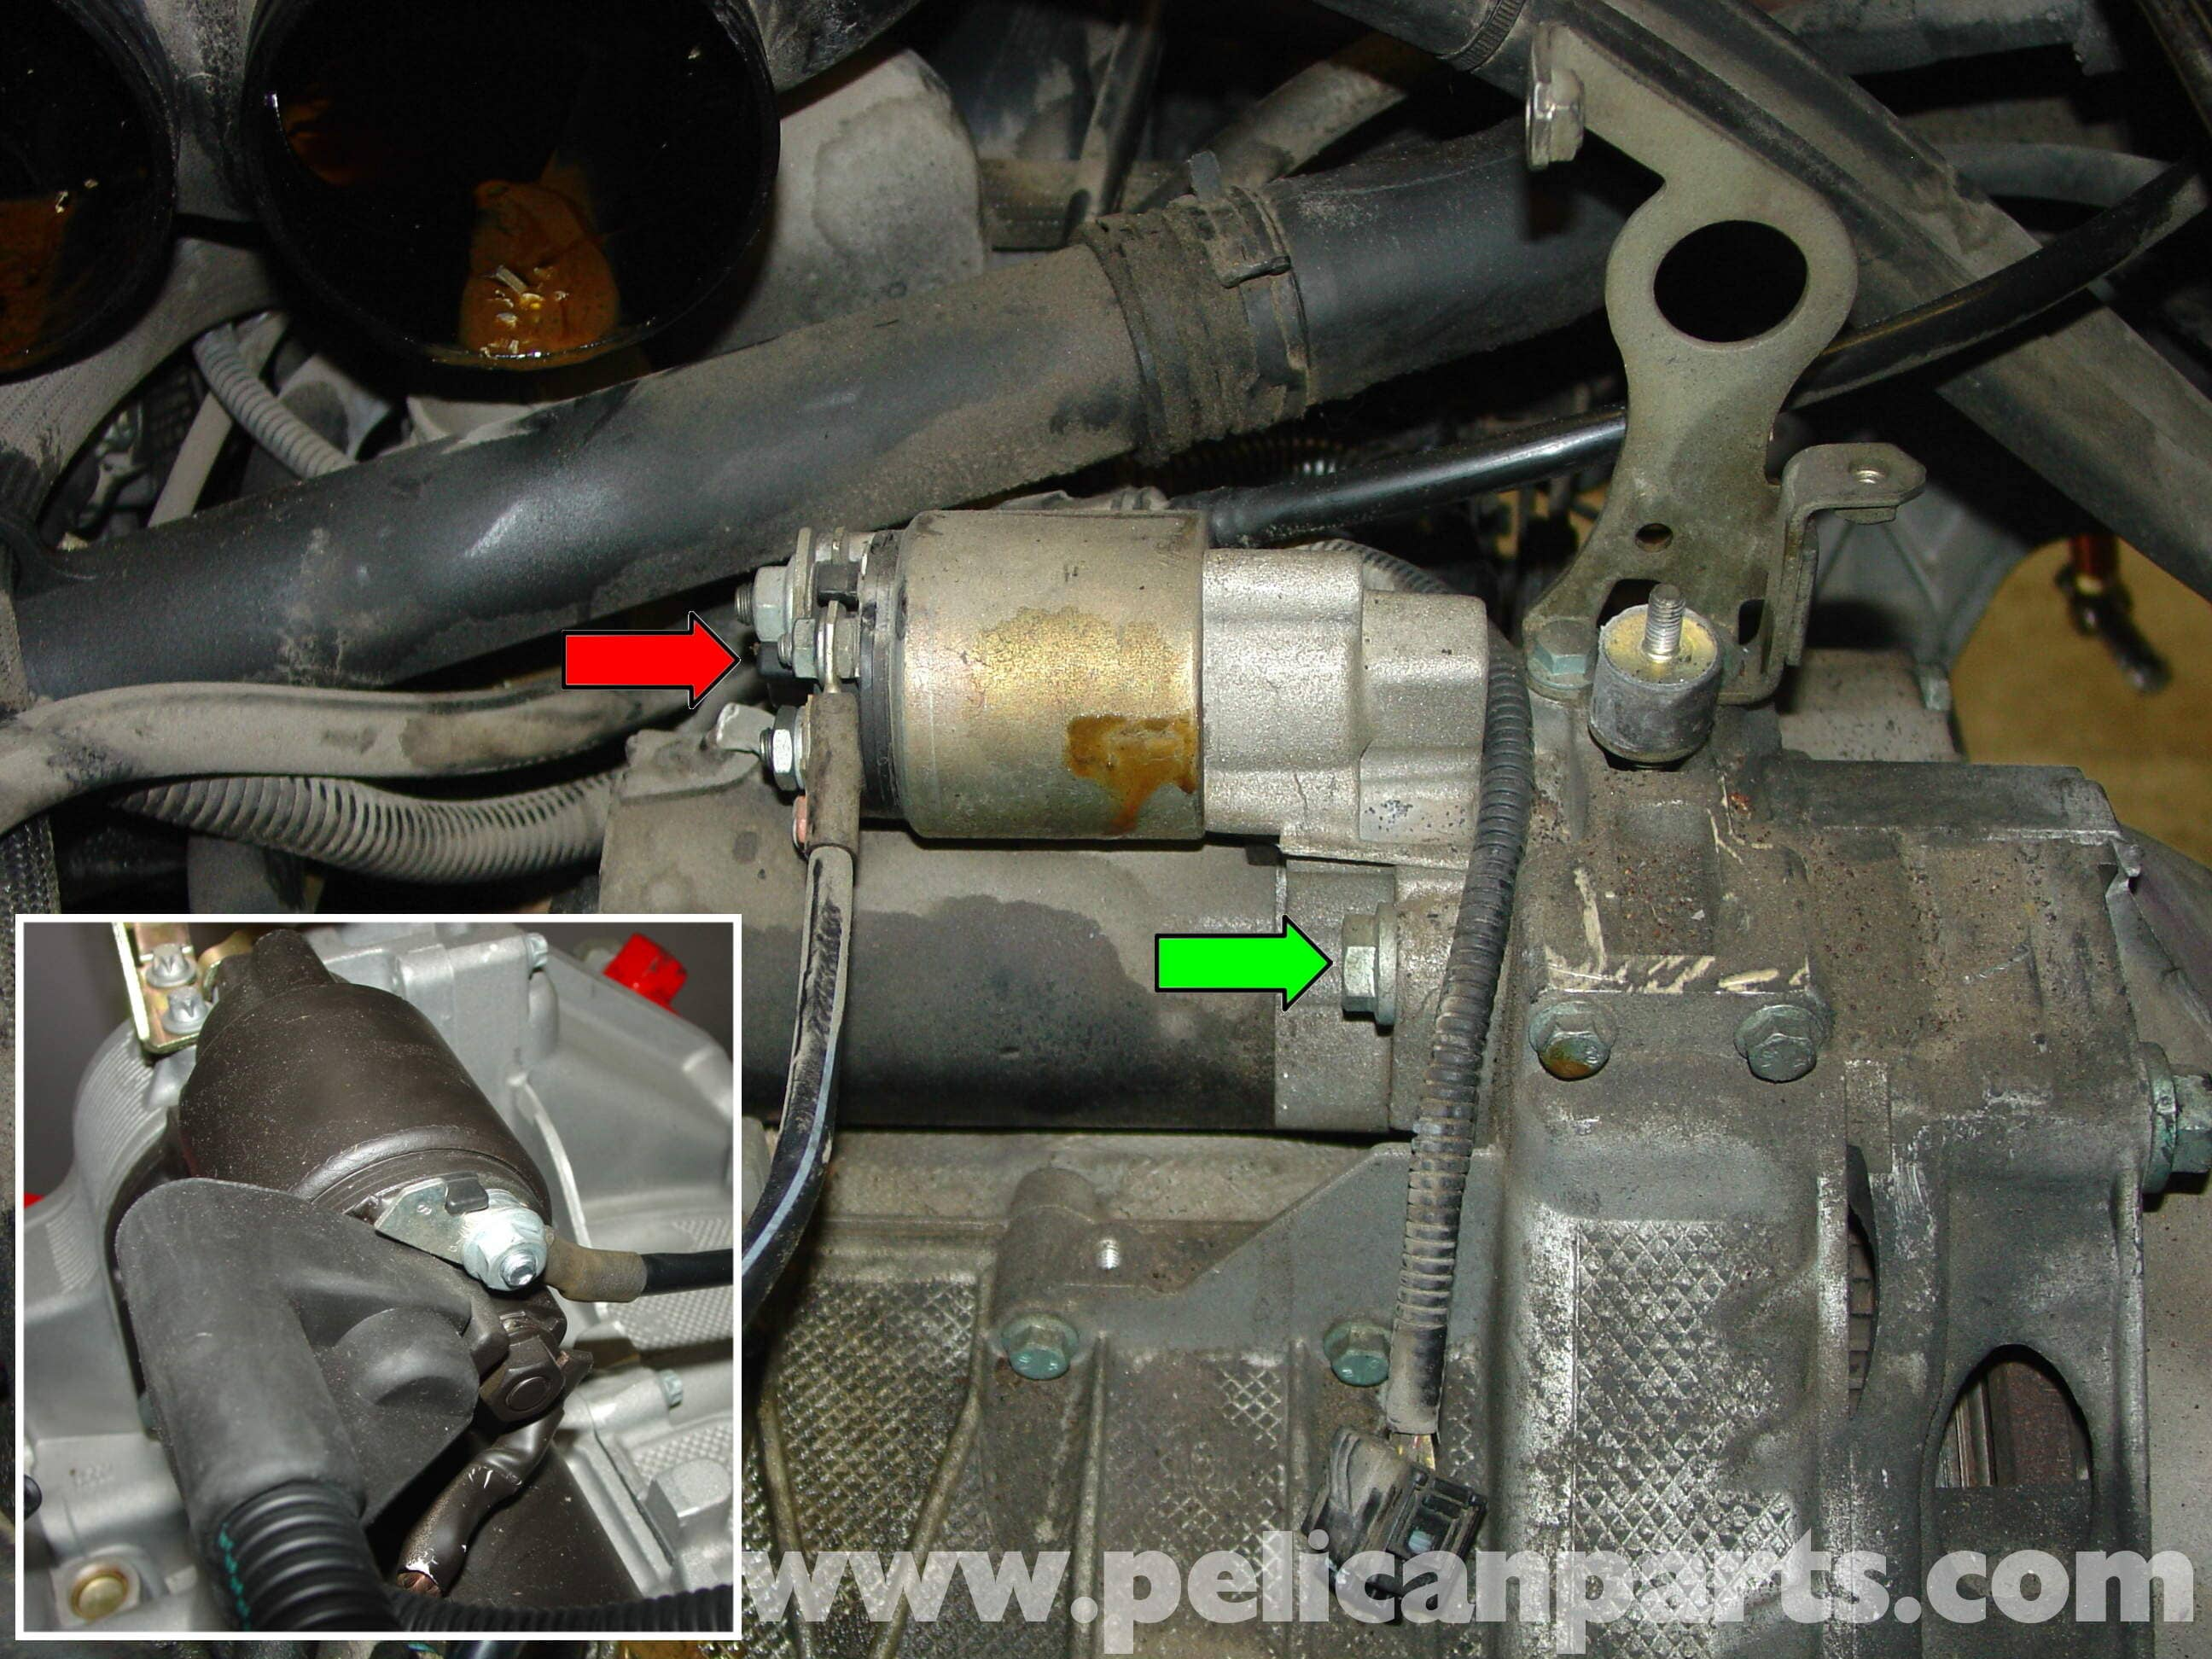 Porsche Boxster Starter Replacement - 986 / 987 (1997-08) - Pelican Parts  Technical ArticlePelican Parts